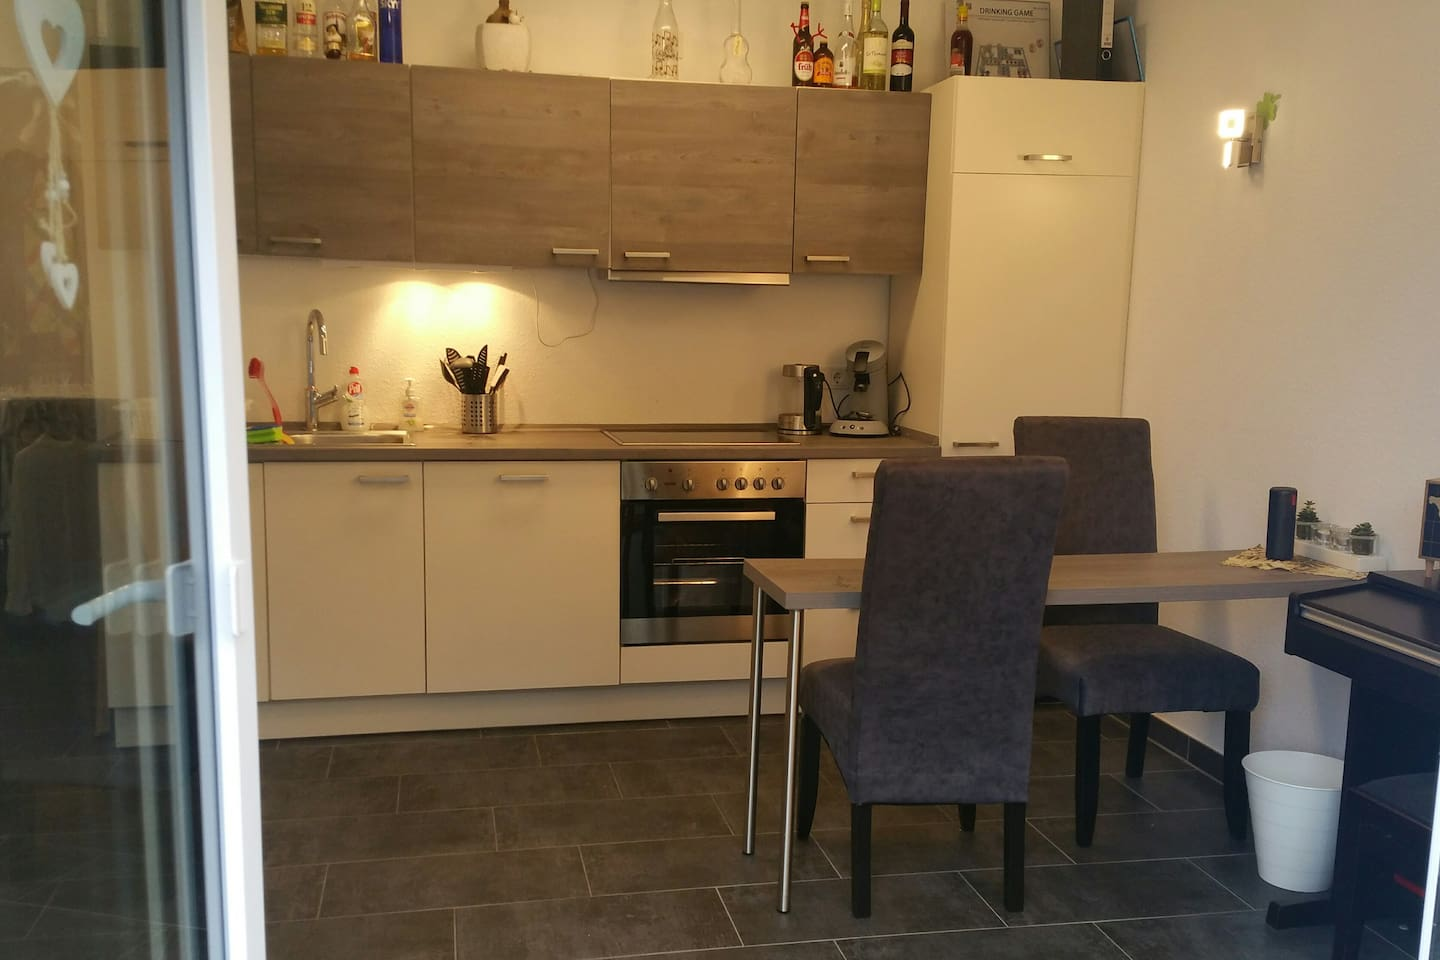 Modernes neues Apartment in ruhiger Lage